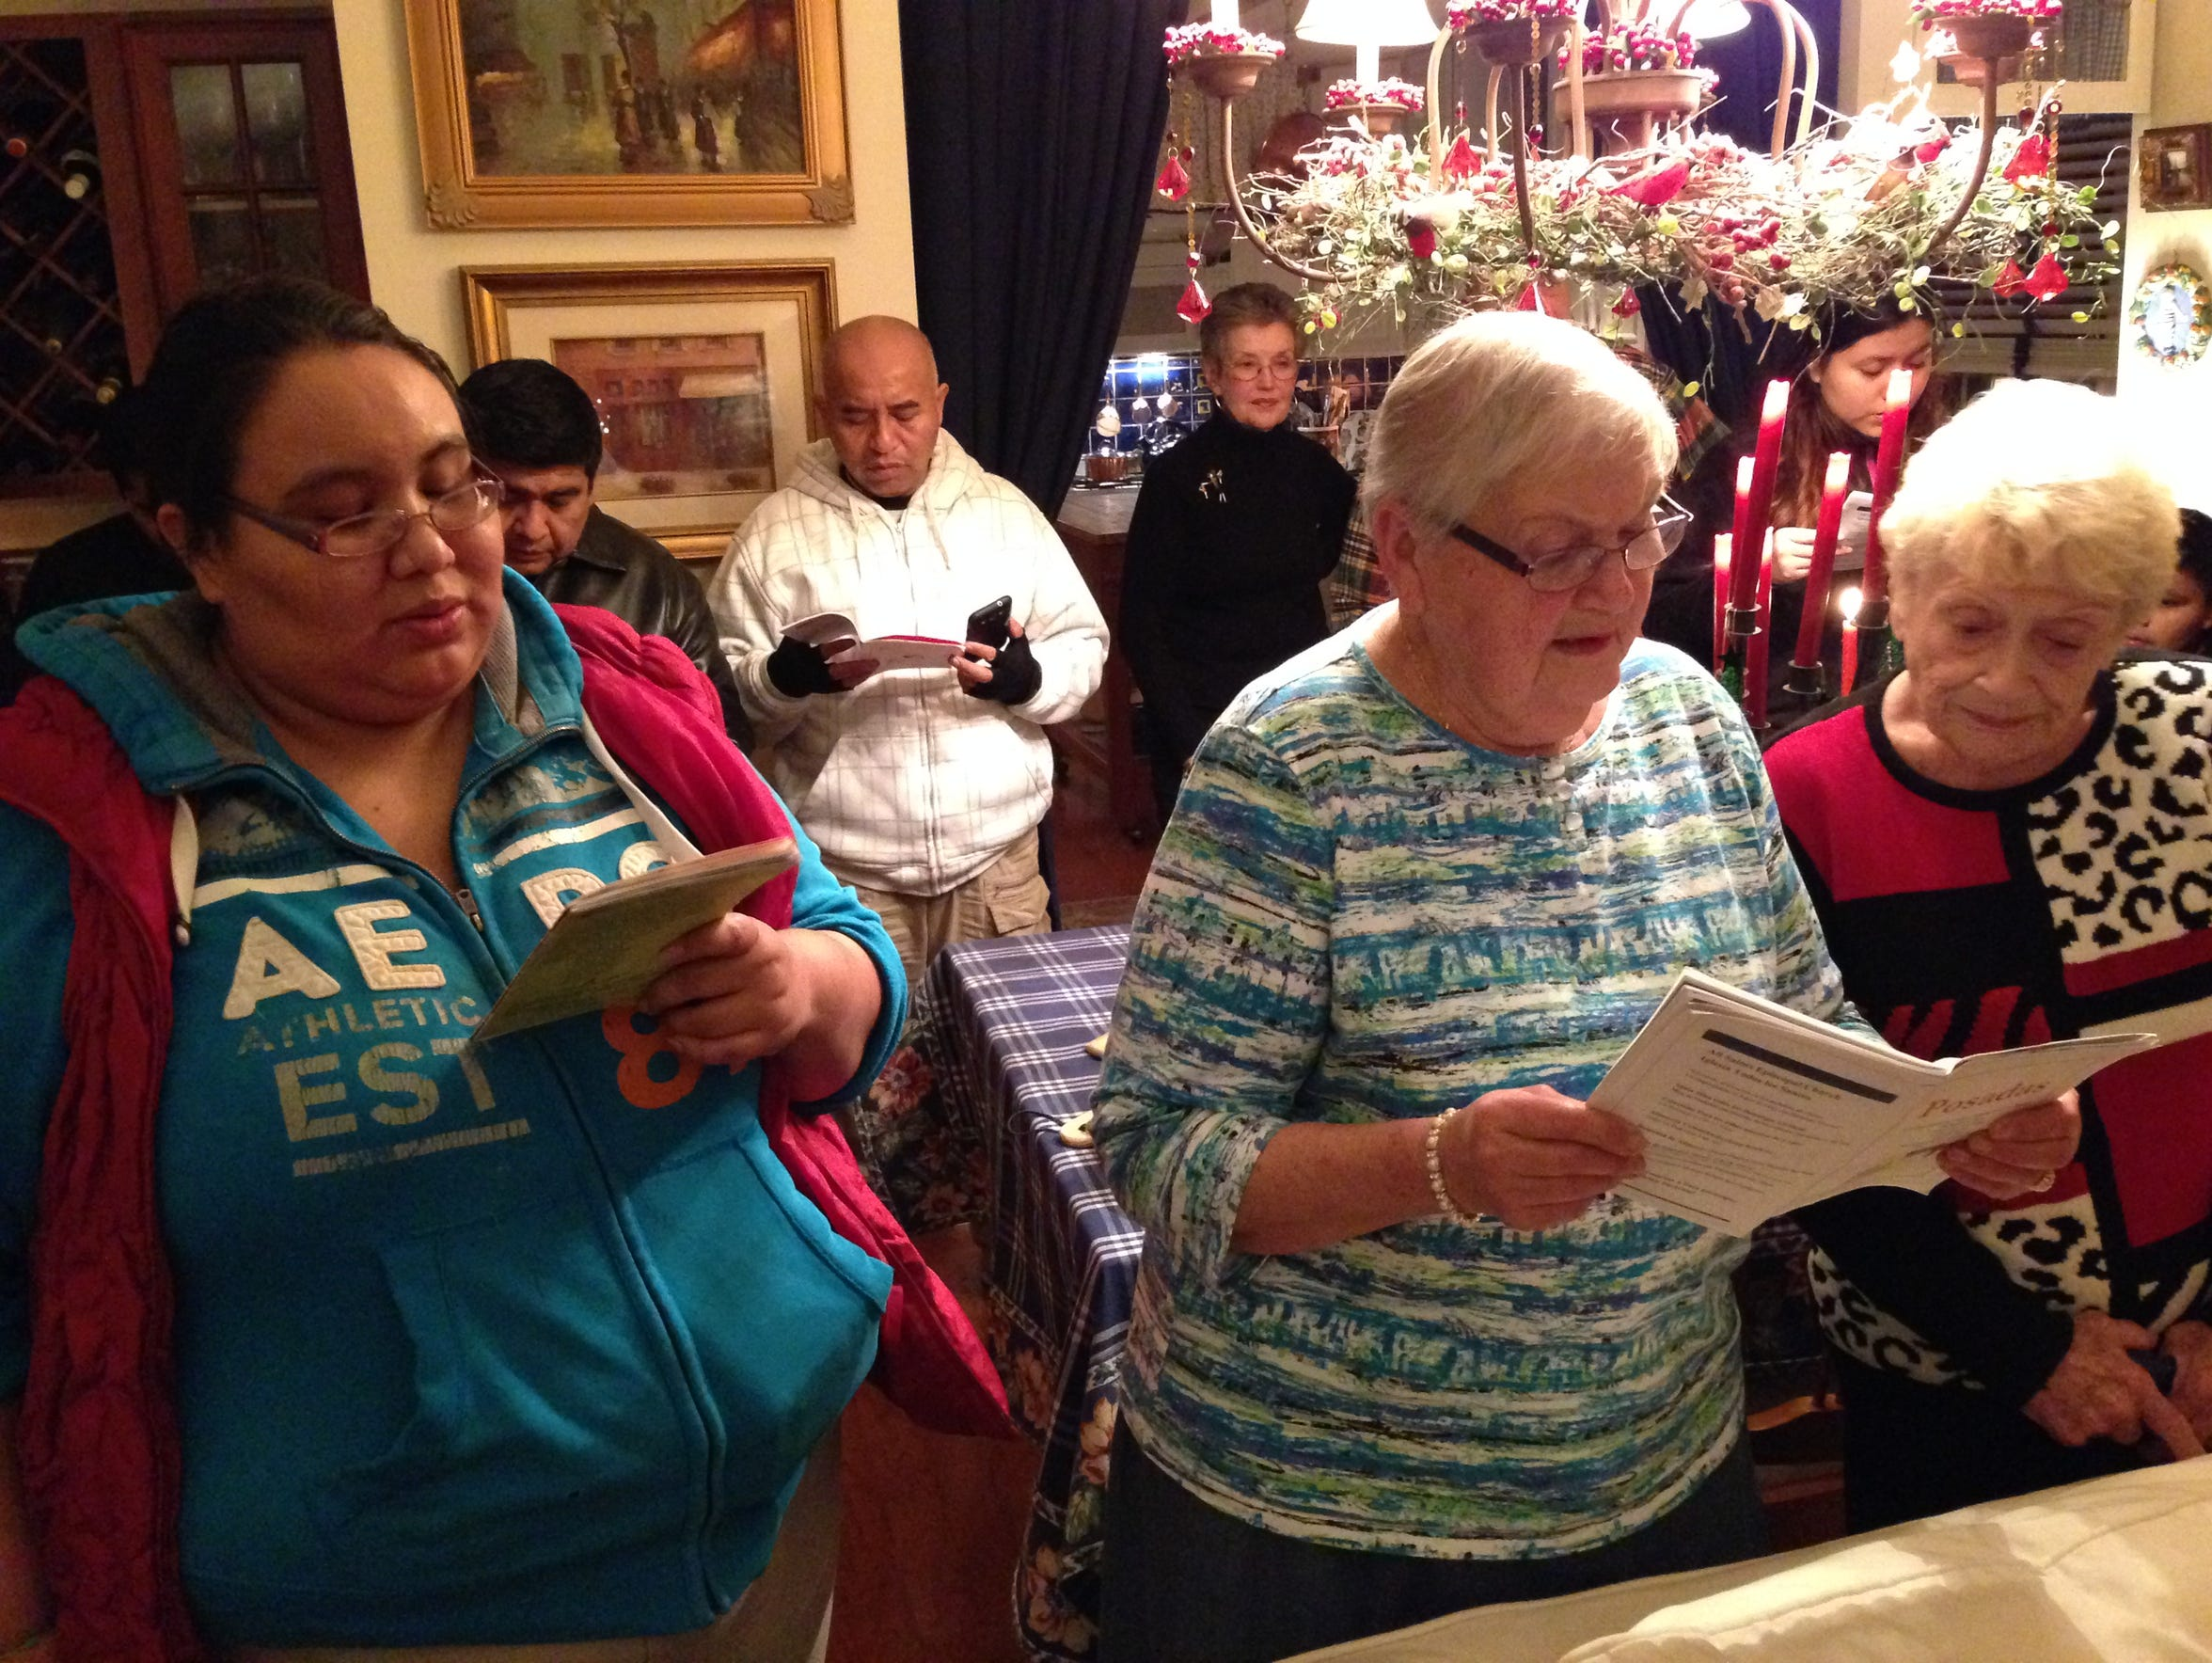 Laura Campos, left, of Jackson, sings during the Las